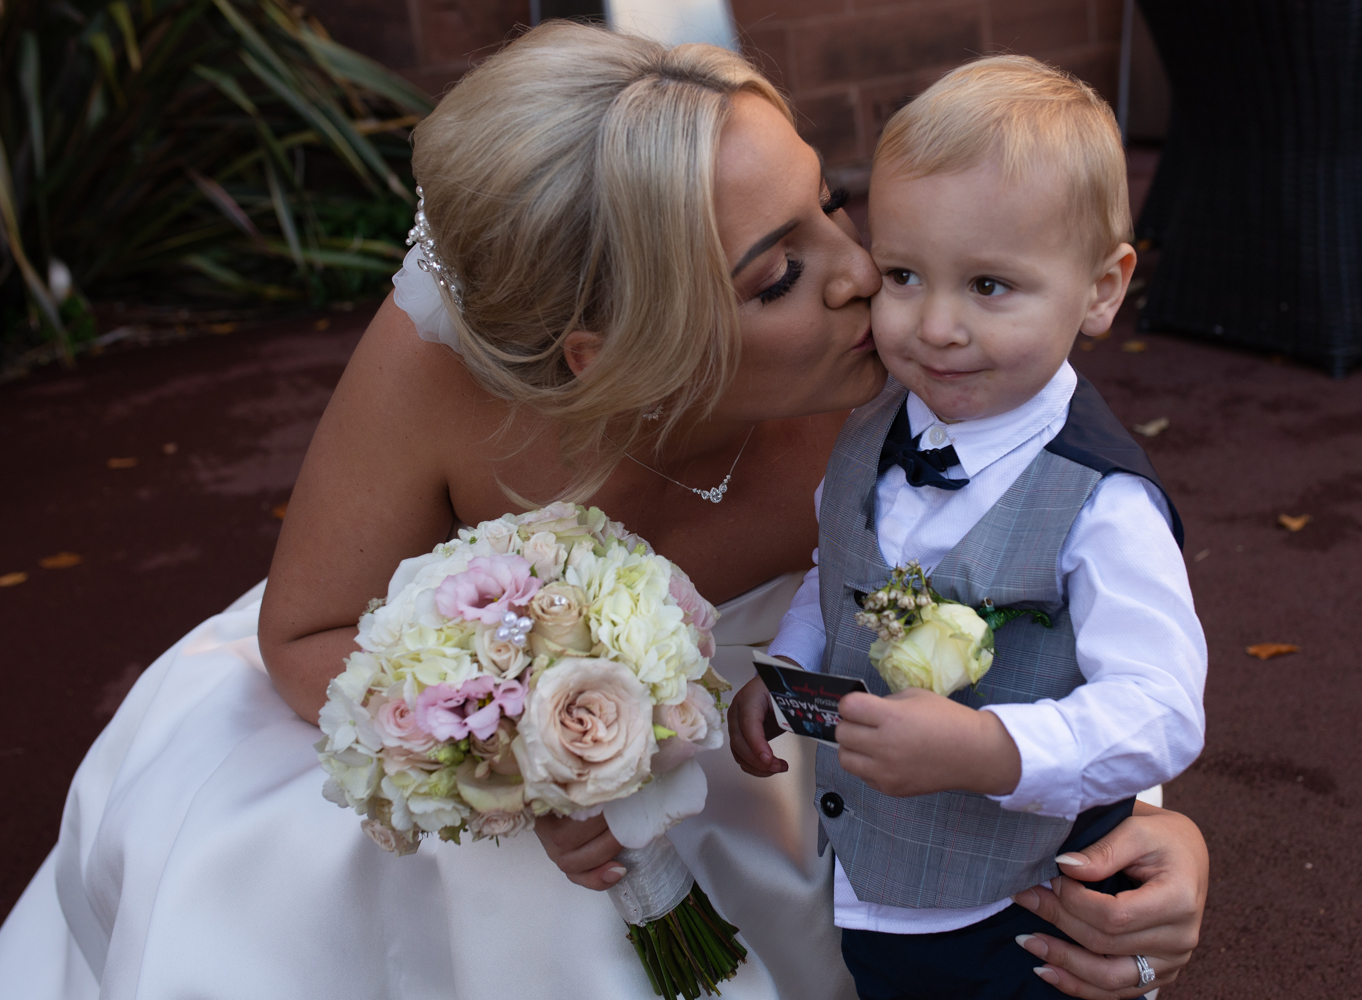 The bride giving her little boy a kiss